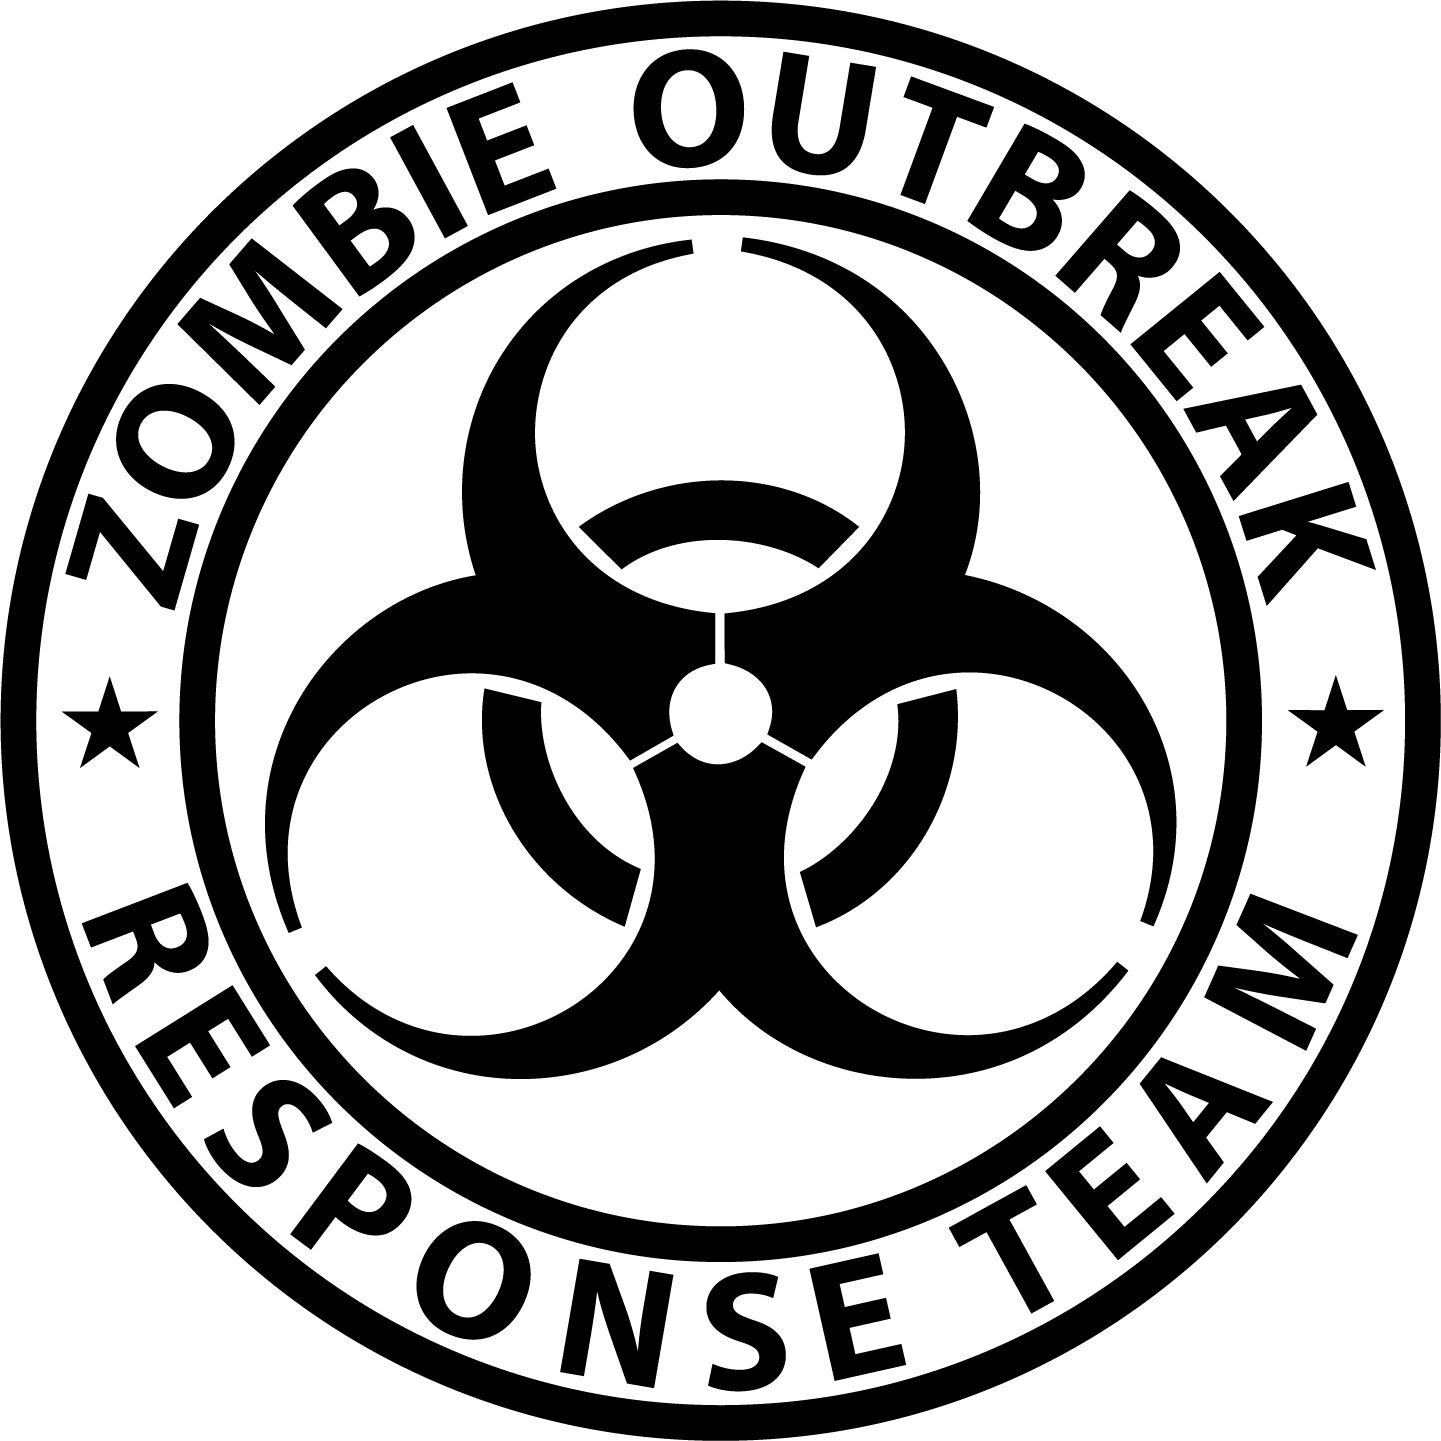 Zombie Outbreak Response Team Wallpaper Zombie Outbreak Response Team